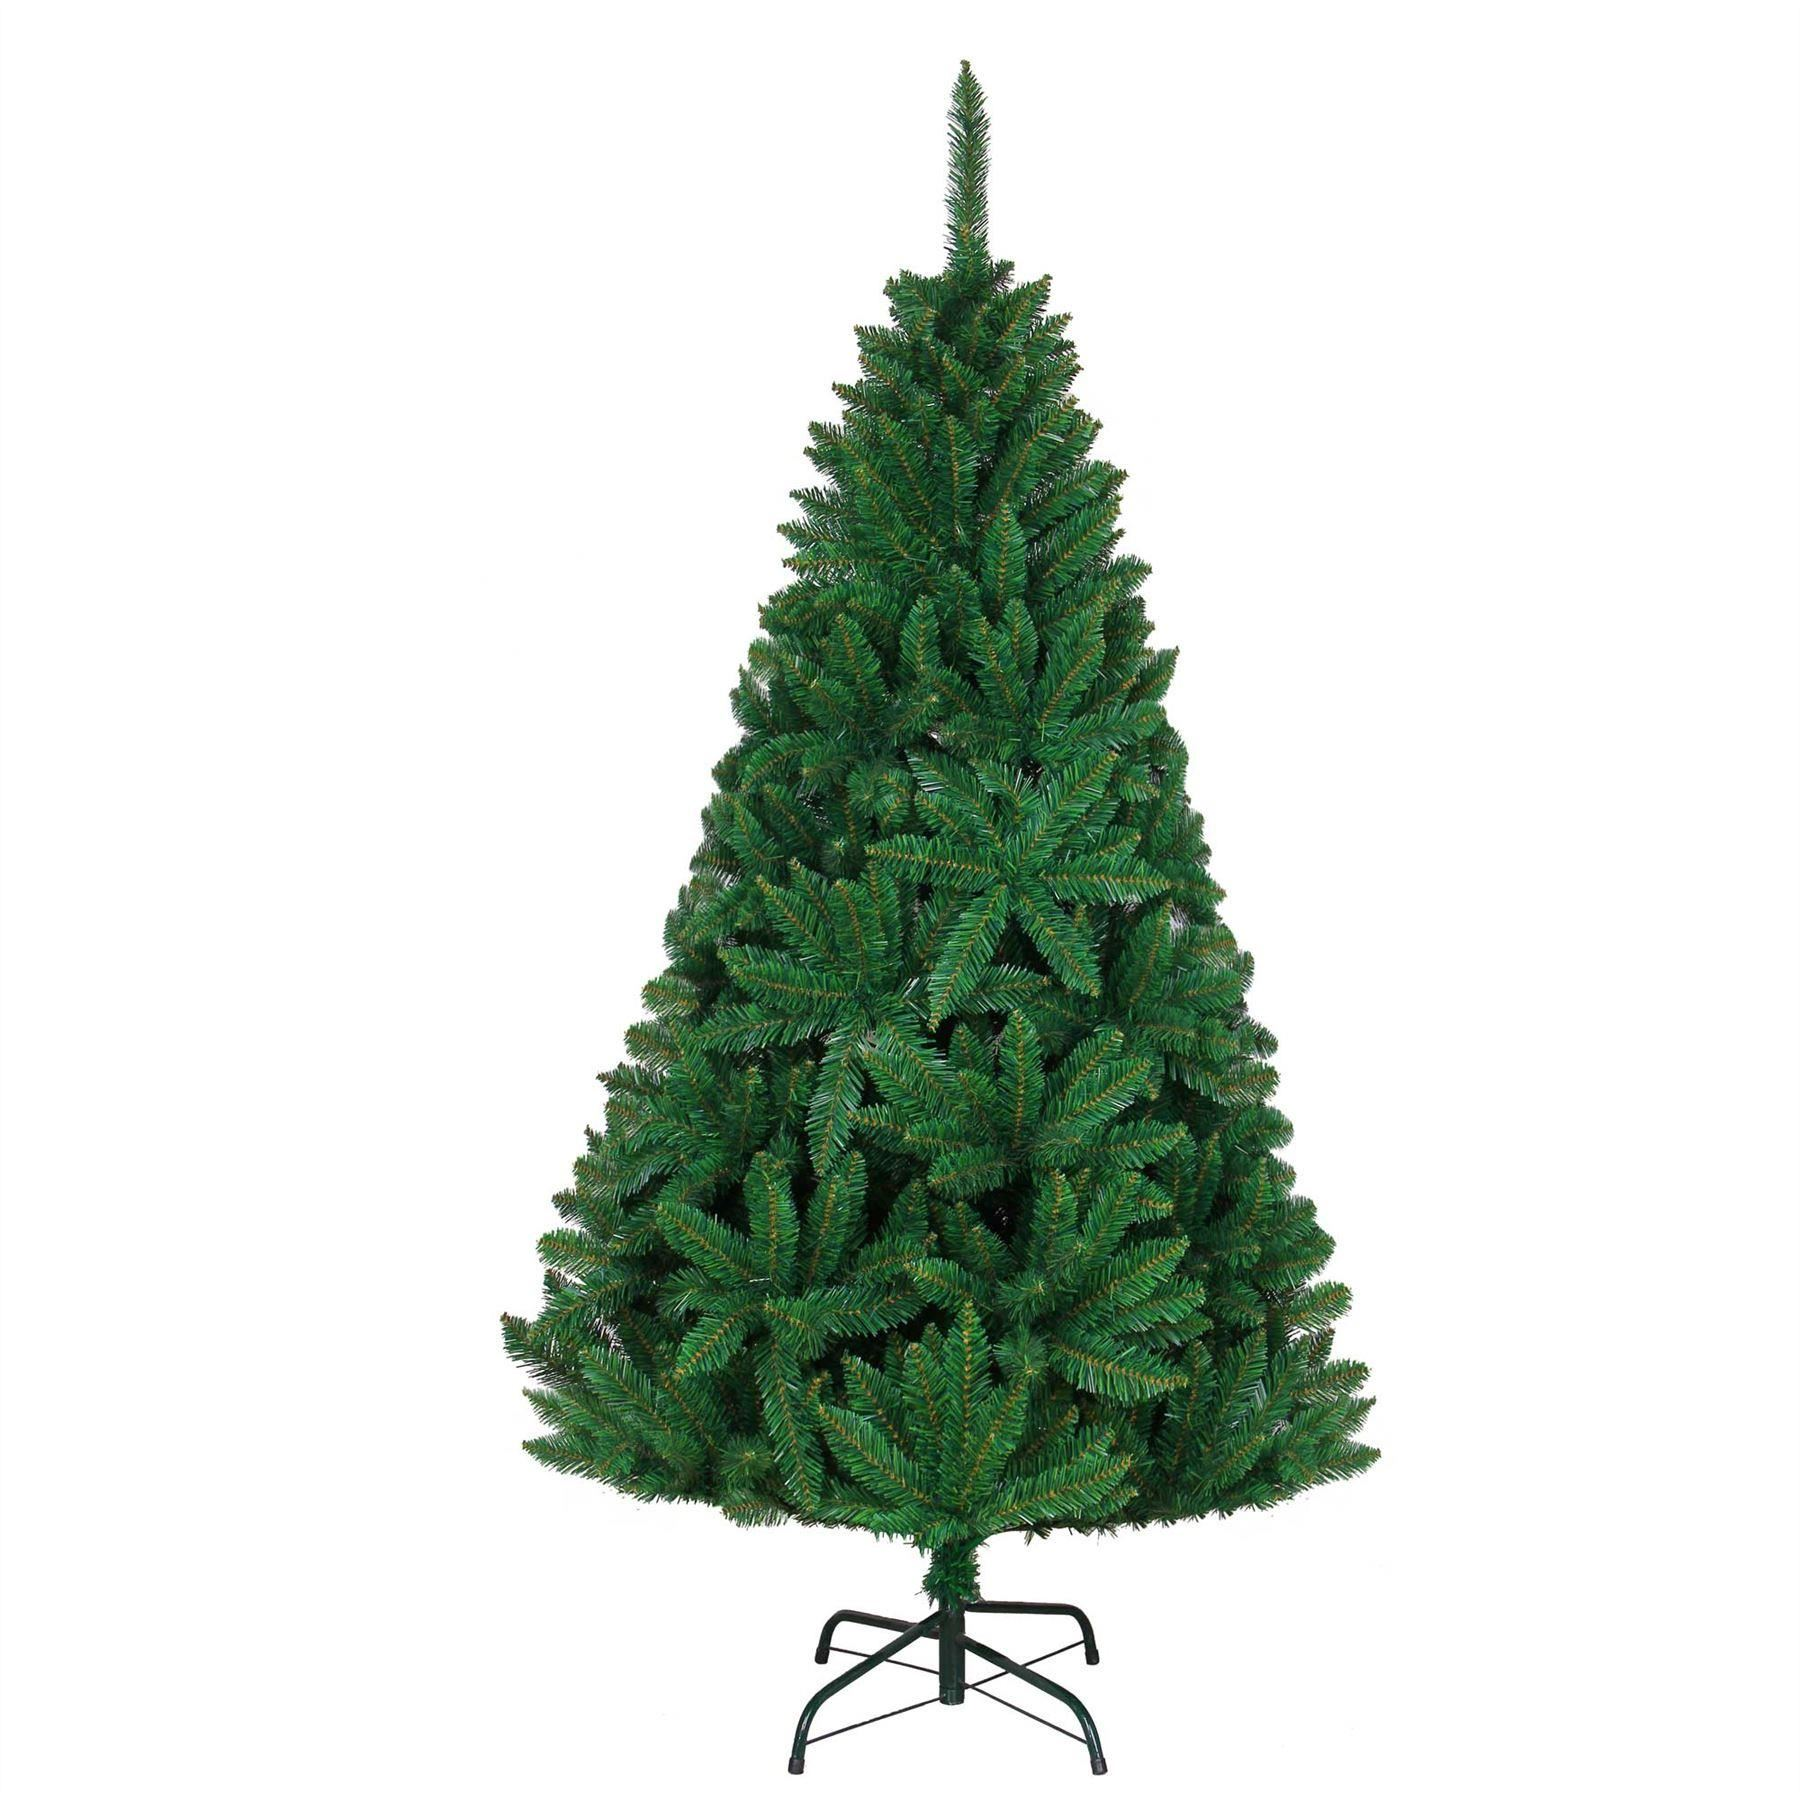 Luxurious Artificial Christmas Tree Natural Looking 4ft 5ft 6ft 7ft 8ft